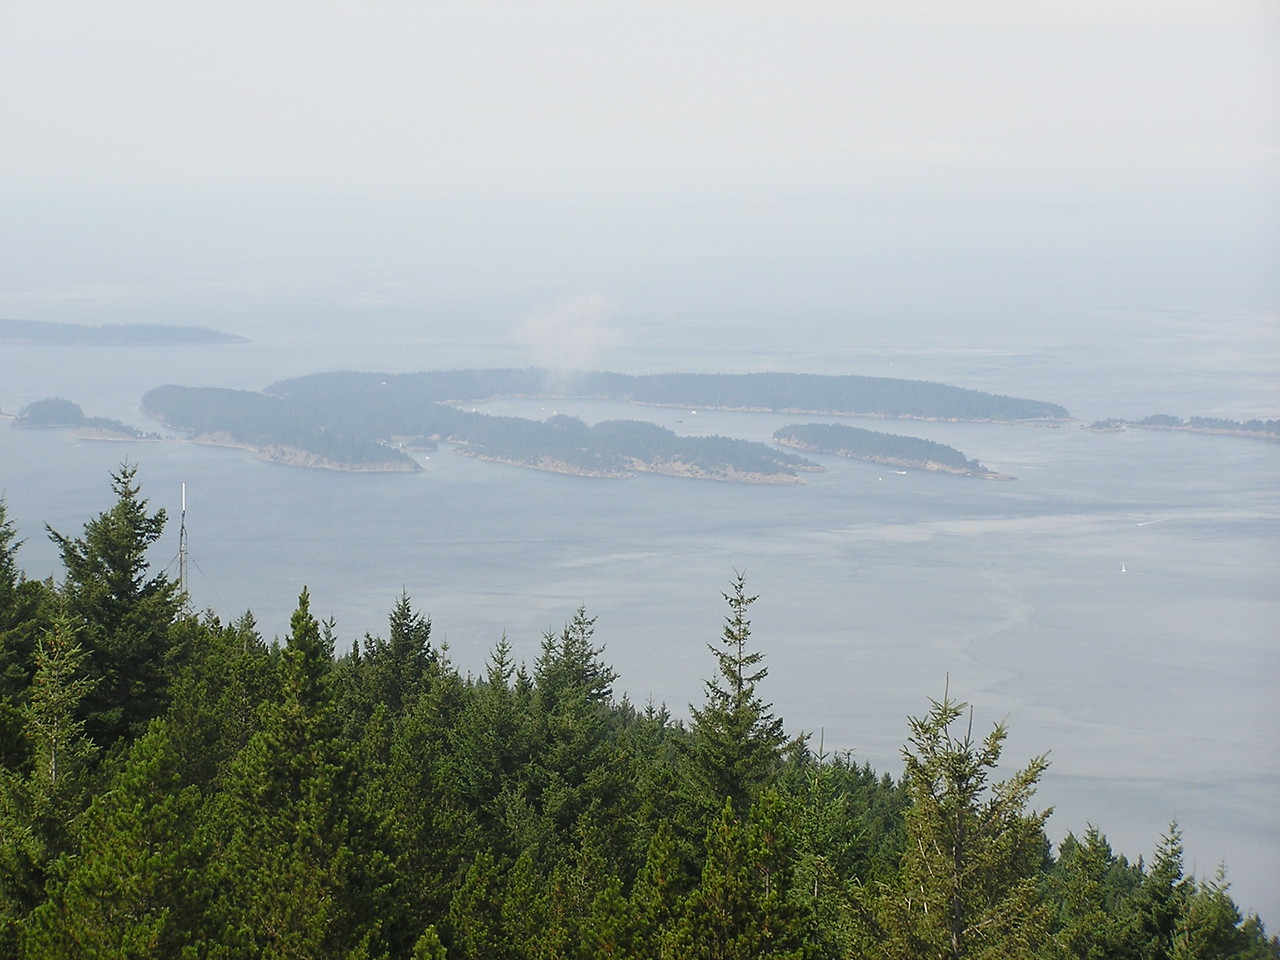 Sucia Island from the lookout tower on top of Mt Constitution on Orcas Island.